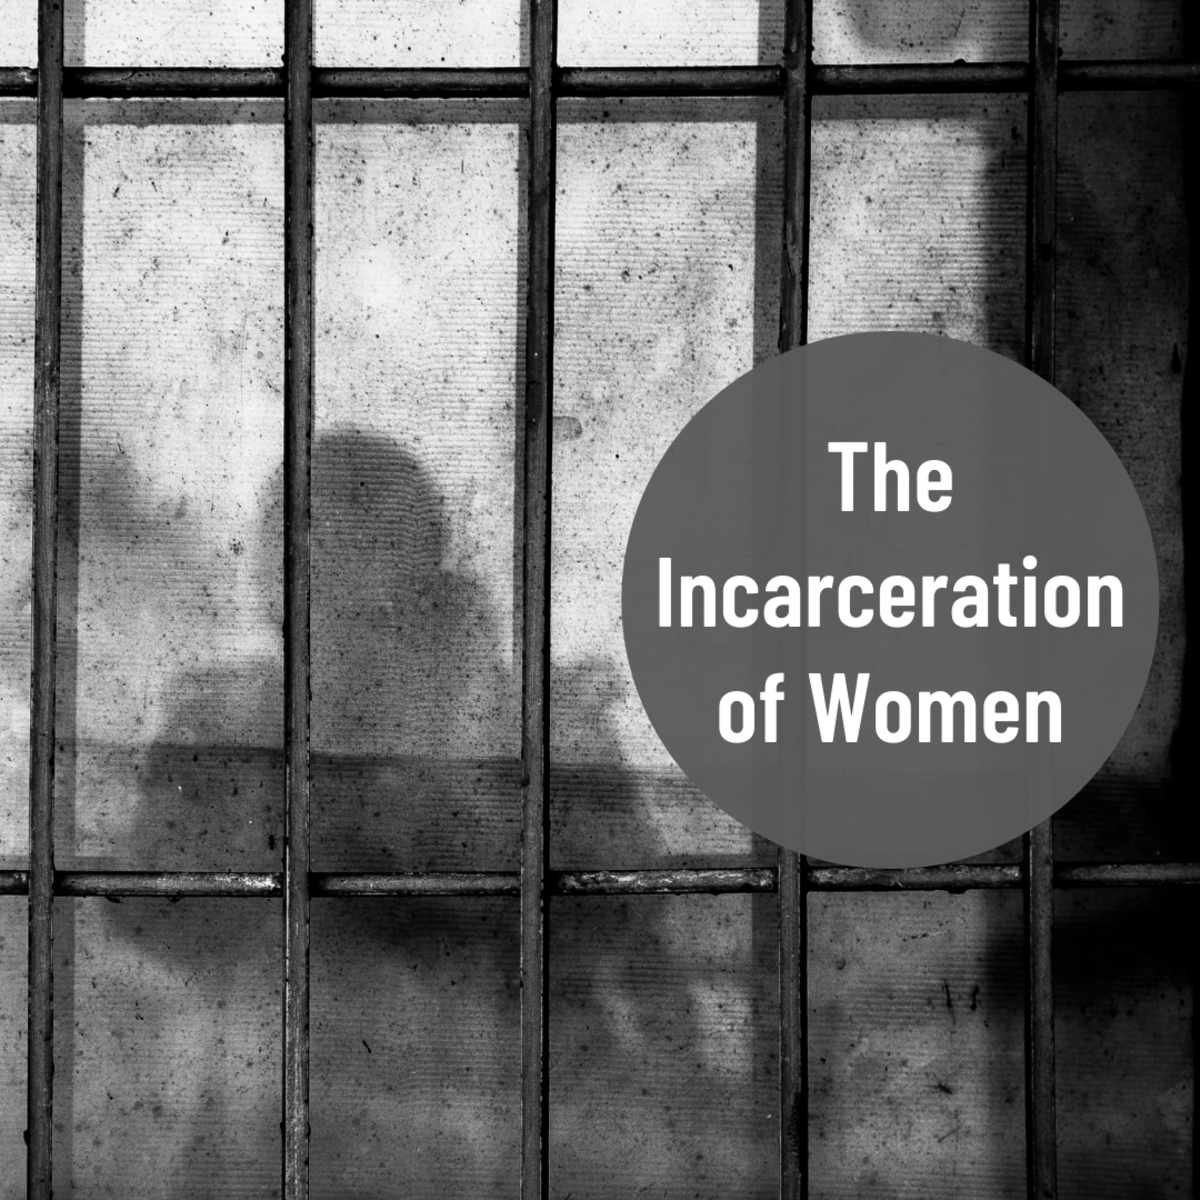 Opinion: Women Should Be Sentenced Differently Than Men